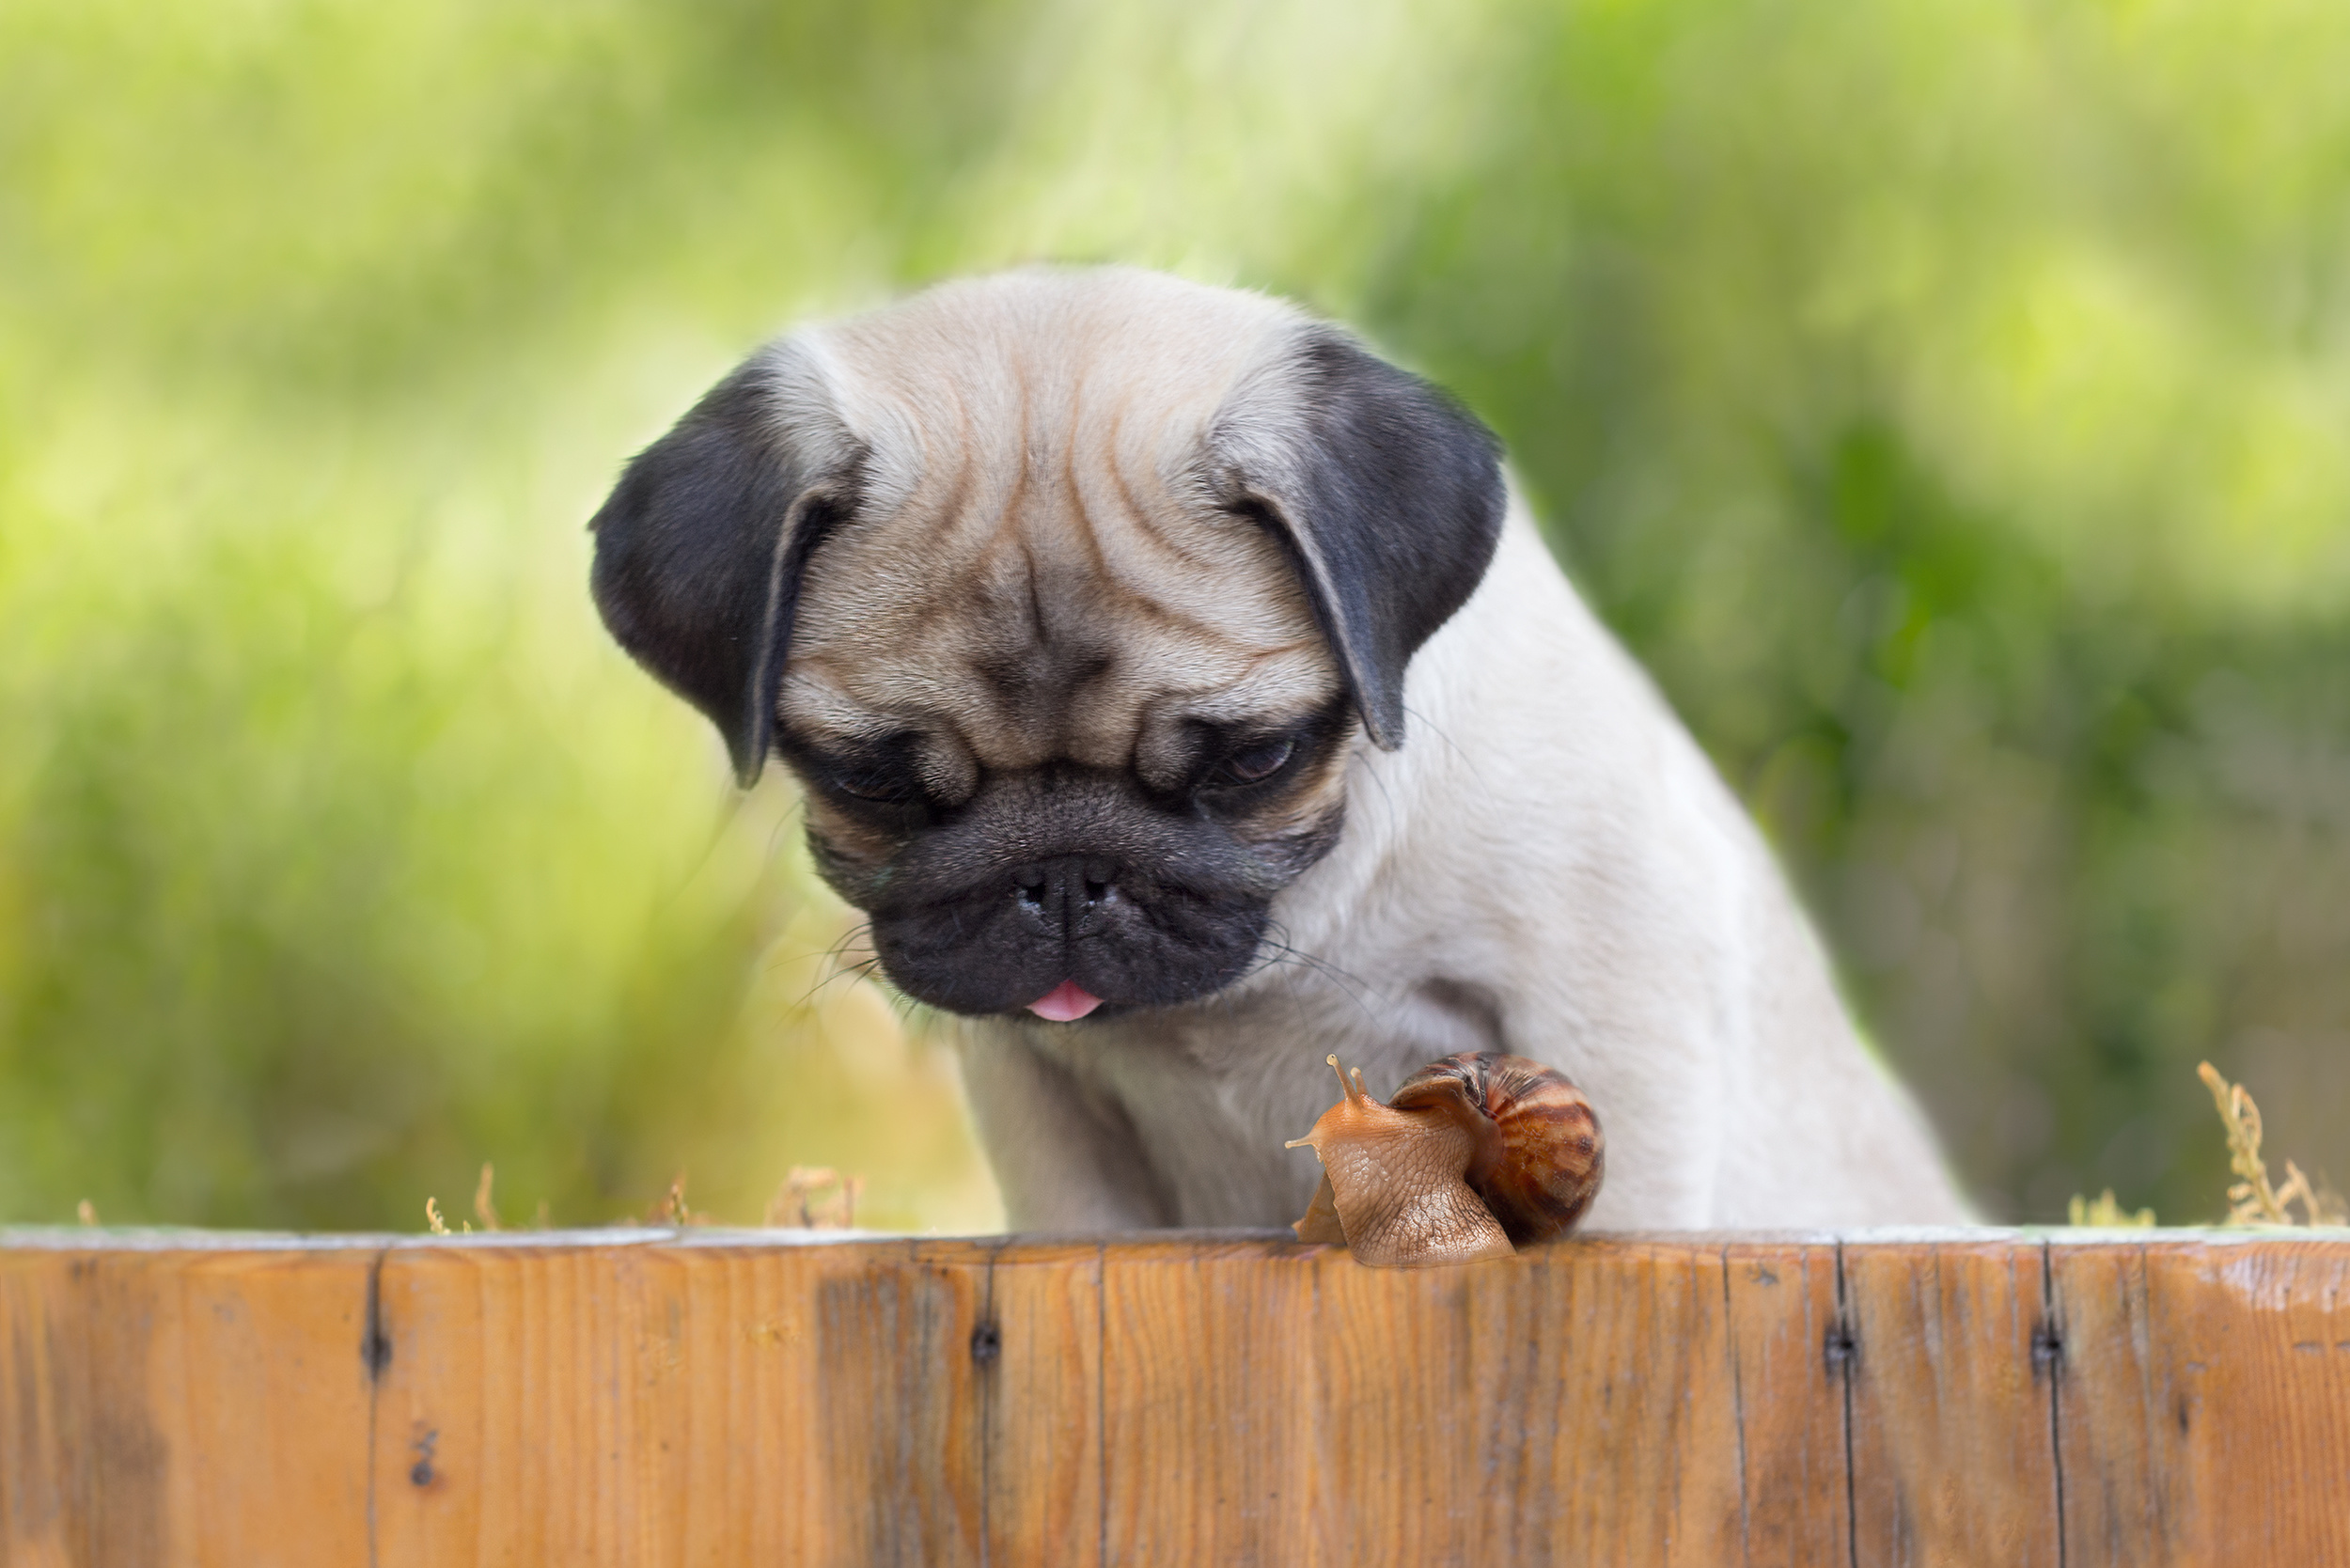 the puppy pug is watching on snail crawling up fence